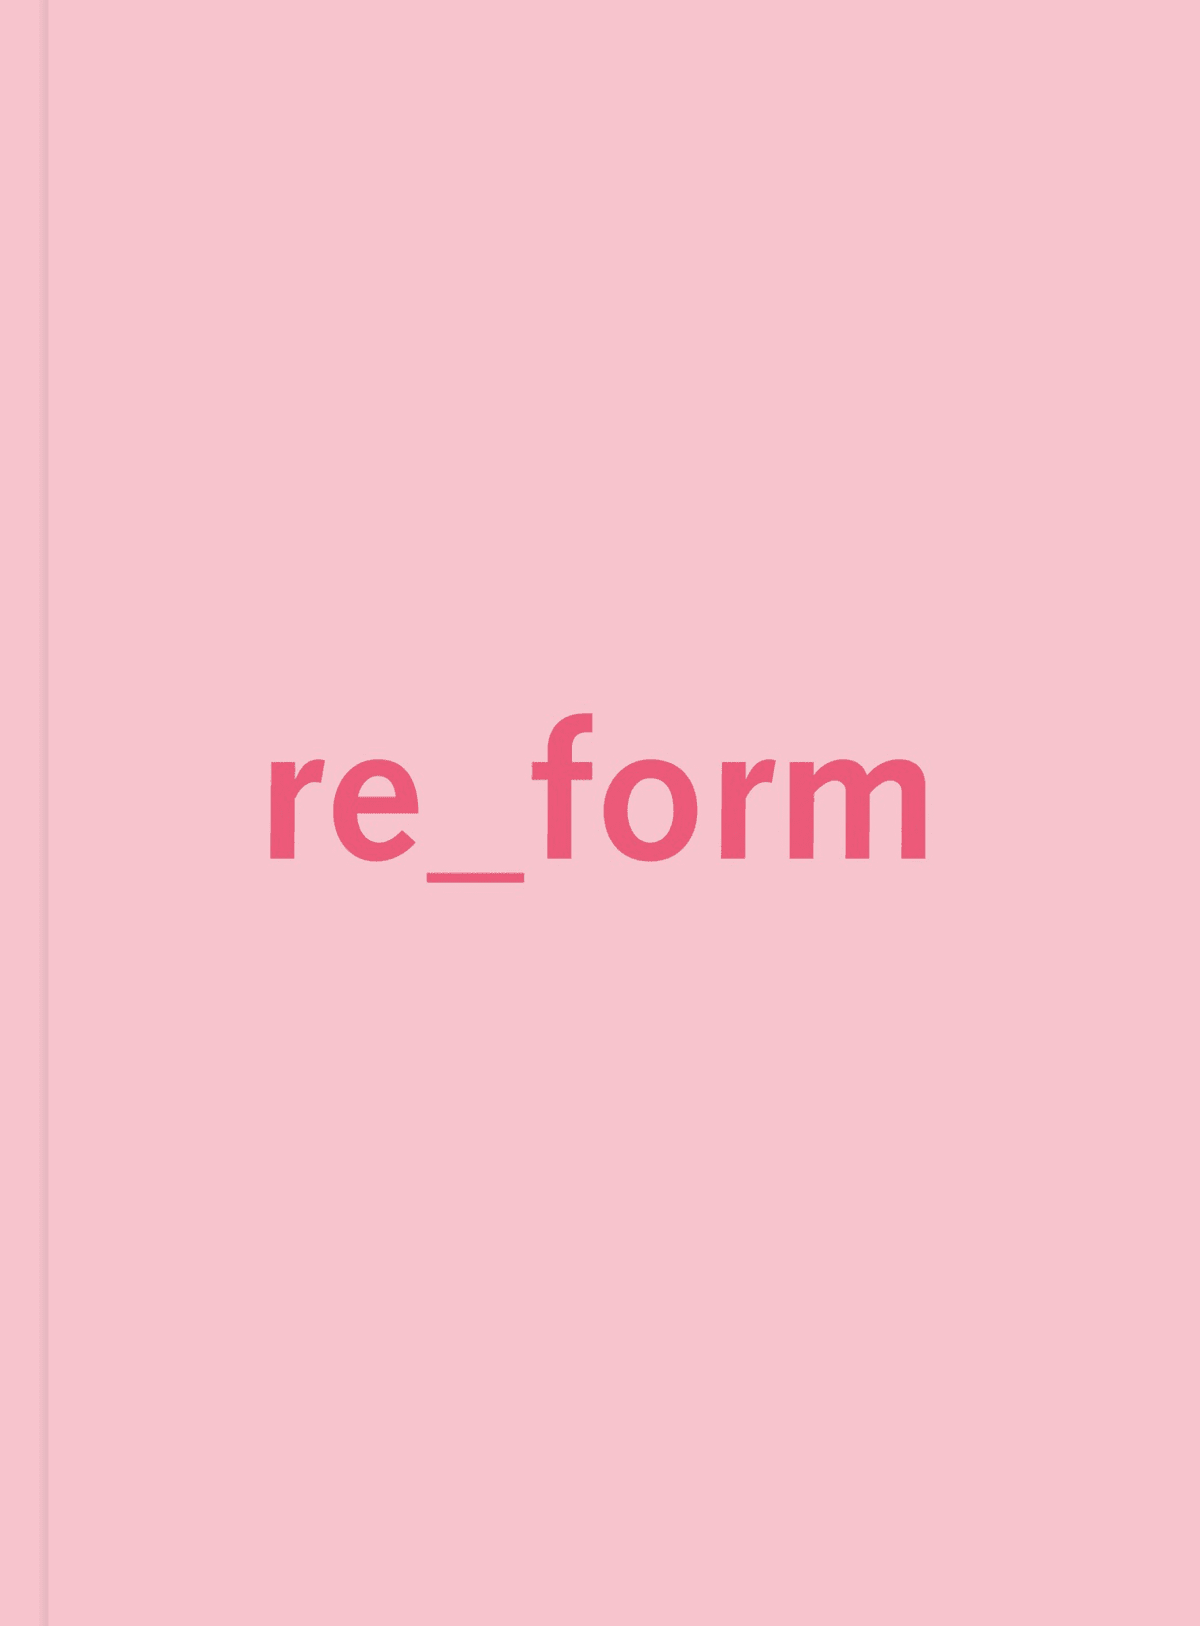 re_form